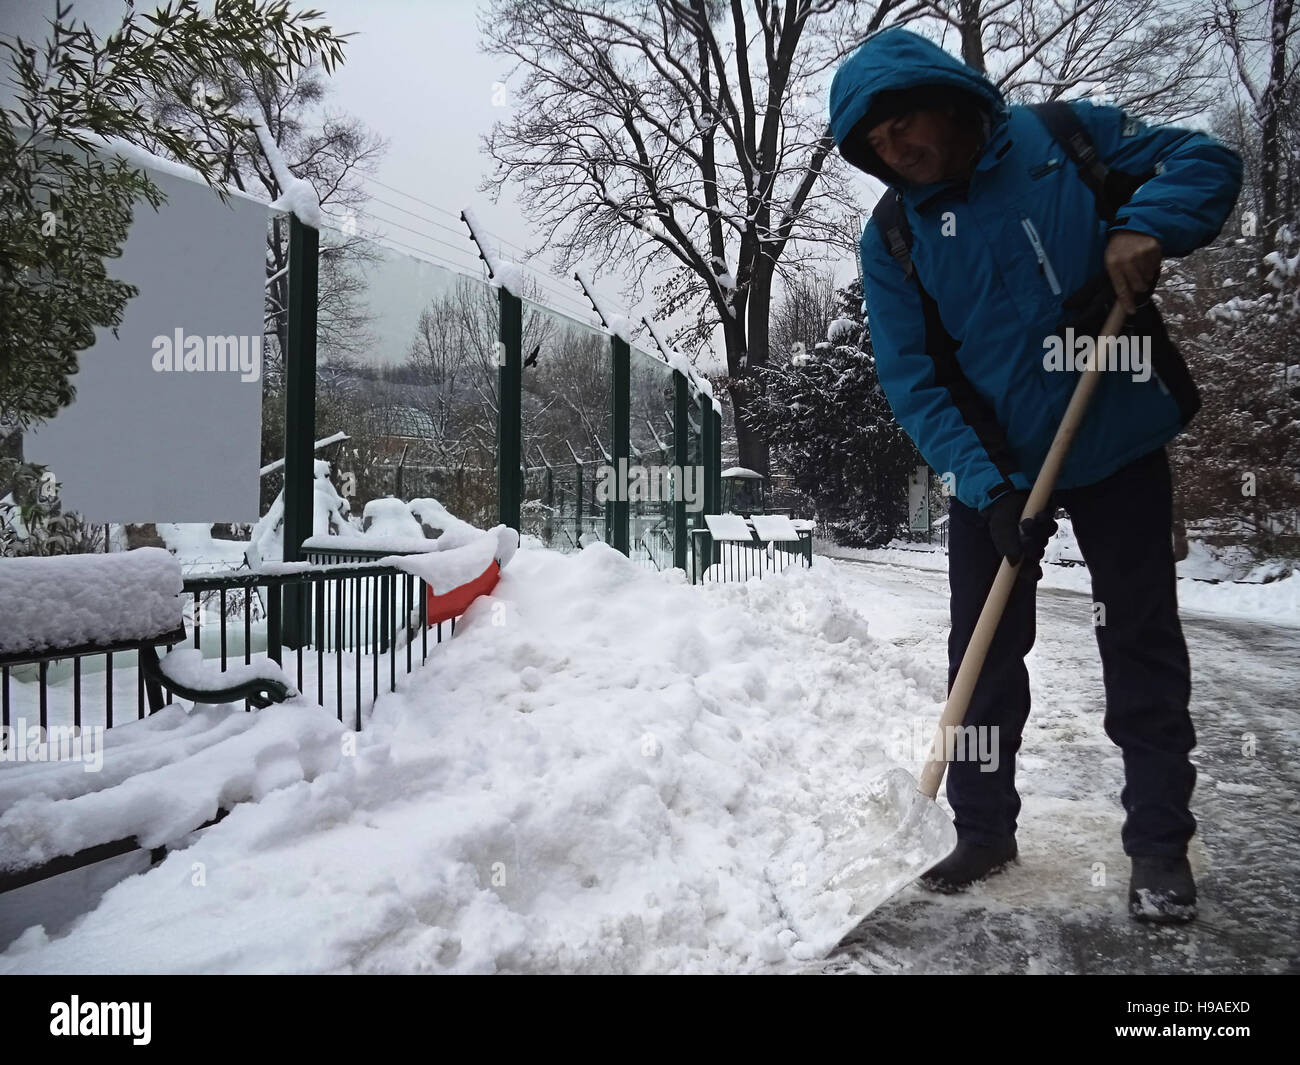 Man cleans snow in the yard with a shovel - Stock Image